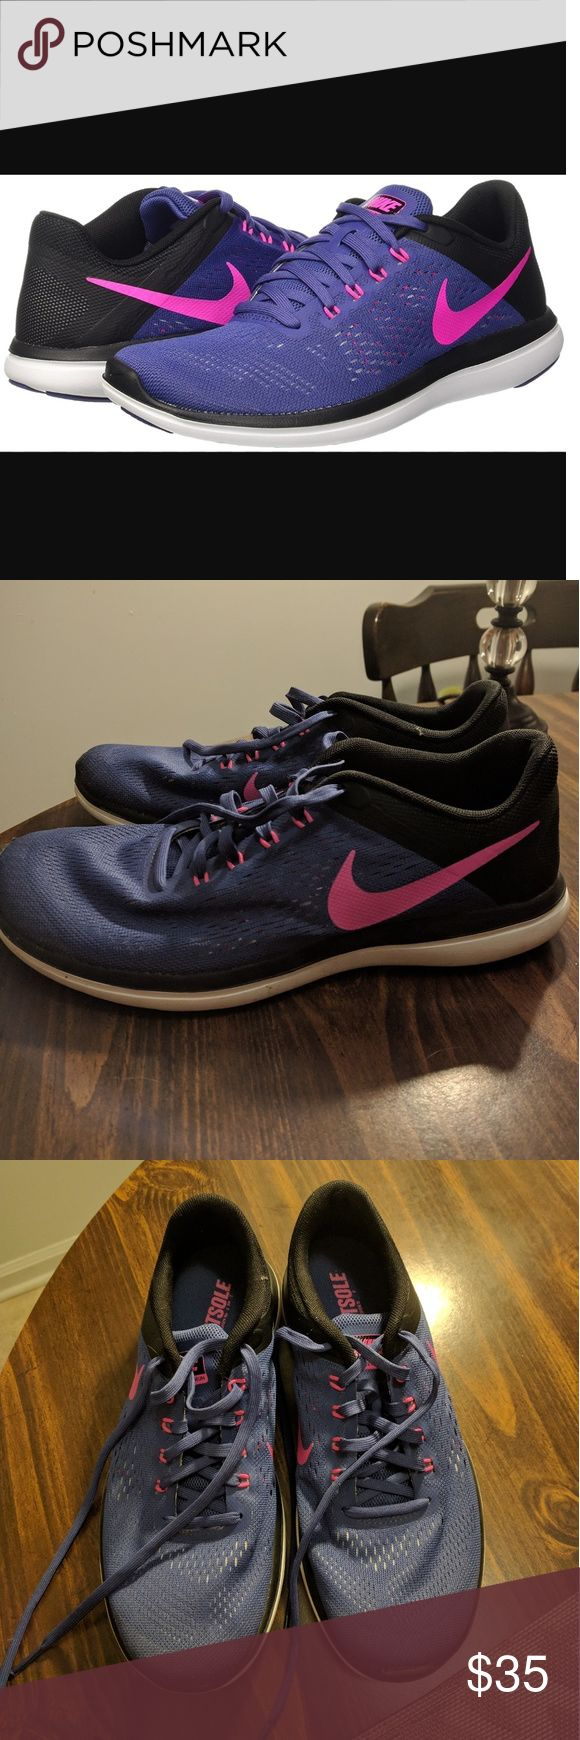 Nike Women's Flex RN Running Shoe Like new Nike Flex running shoes size 9. In great condition, worn about 3 times. Purple and black with pink Nike check. Price is firm on these. Nike Shoes Athletic Shoes